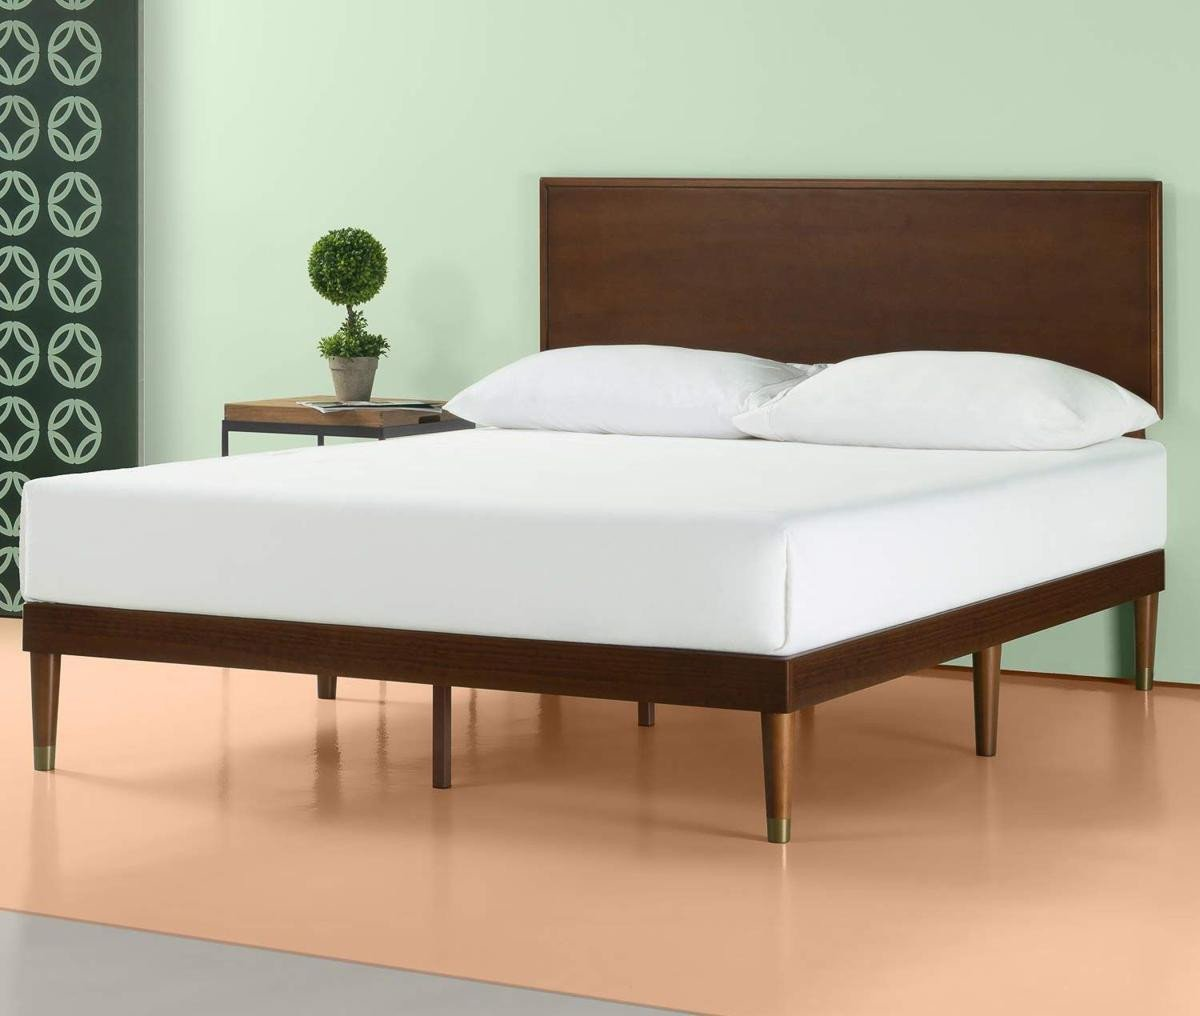 Best Place to Buy Bedroom Furniture Beautiful Get A West Elm Look for Under $300 with This Mid Century Bed